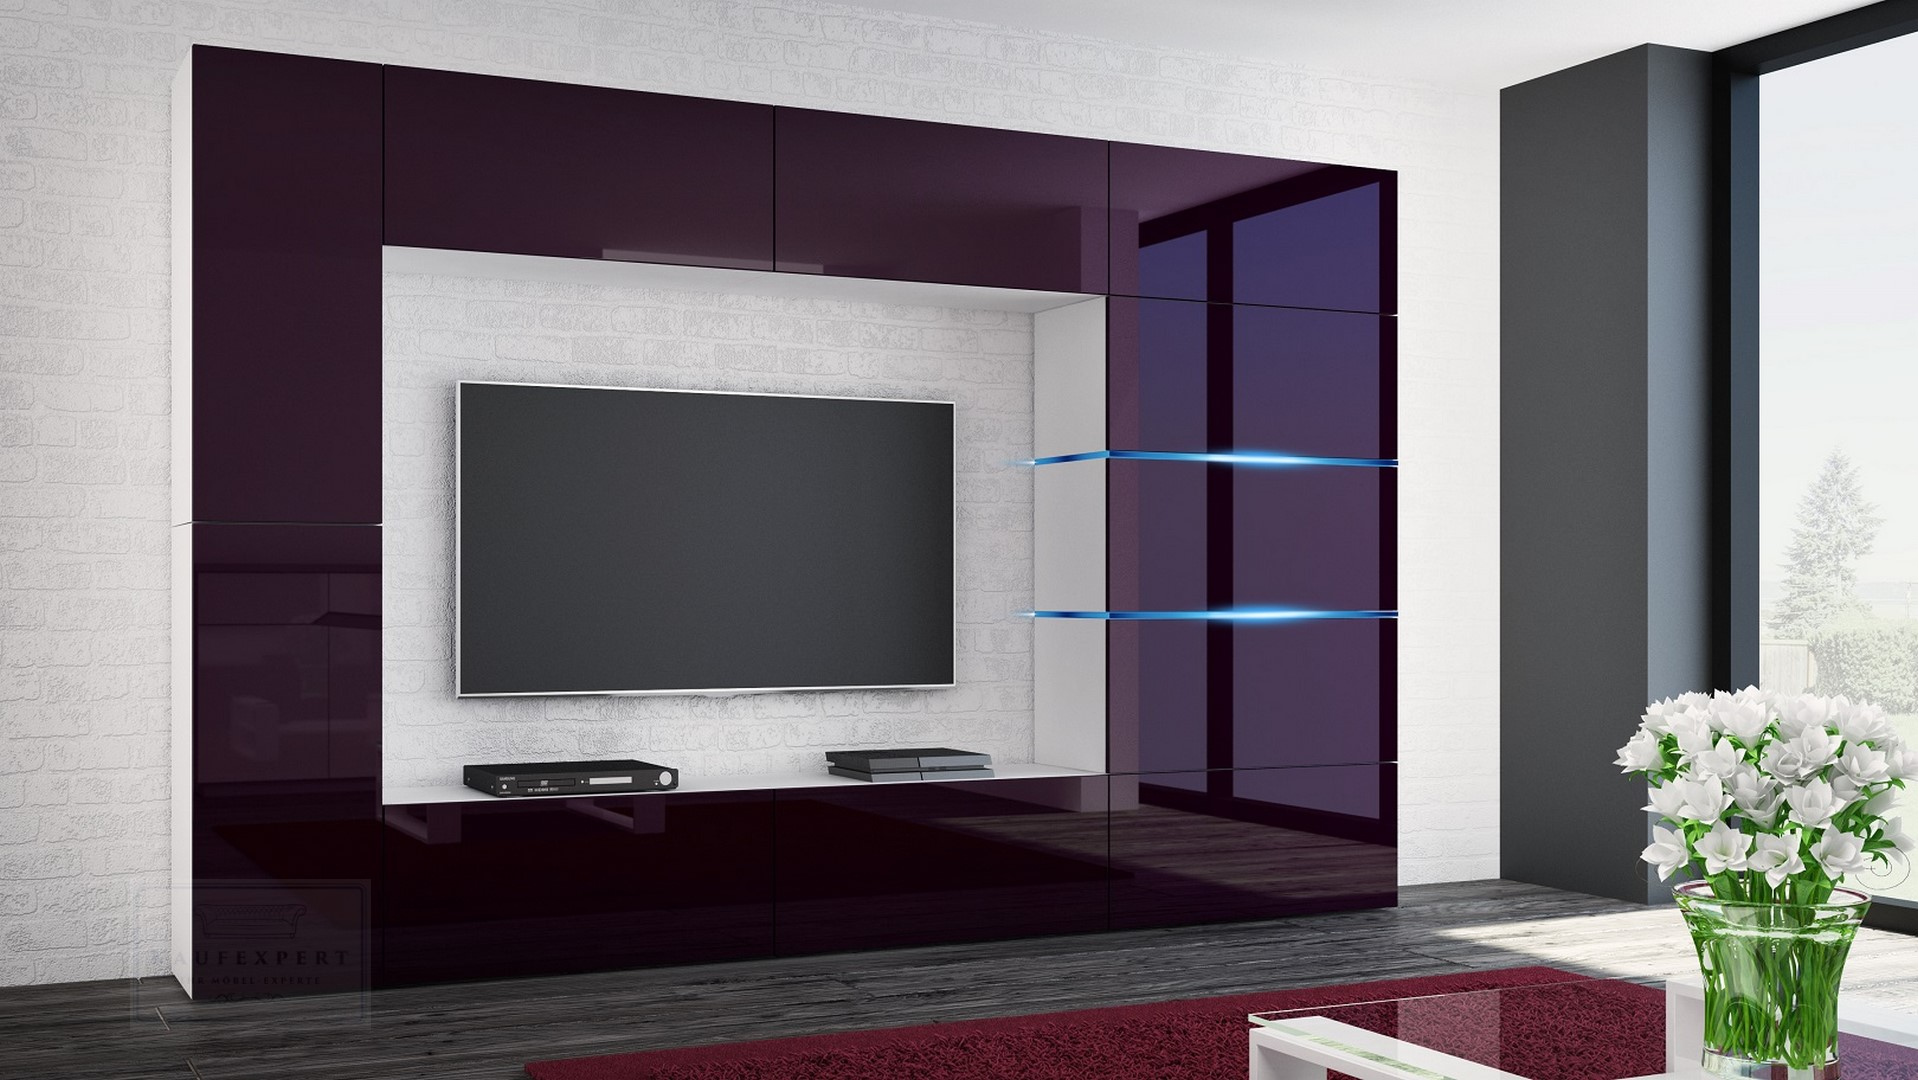 kaufexpert wohnwand shadow aubergine hochglanz wei 285 cm mediawand anbauwand medienwand. Black Bedroom Furniture Sets. Home Design Ideas